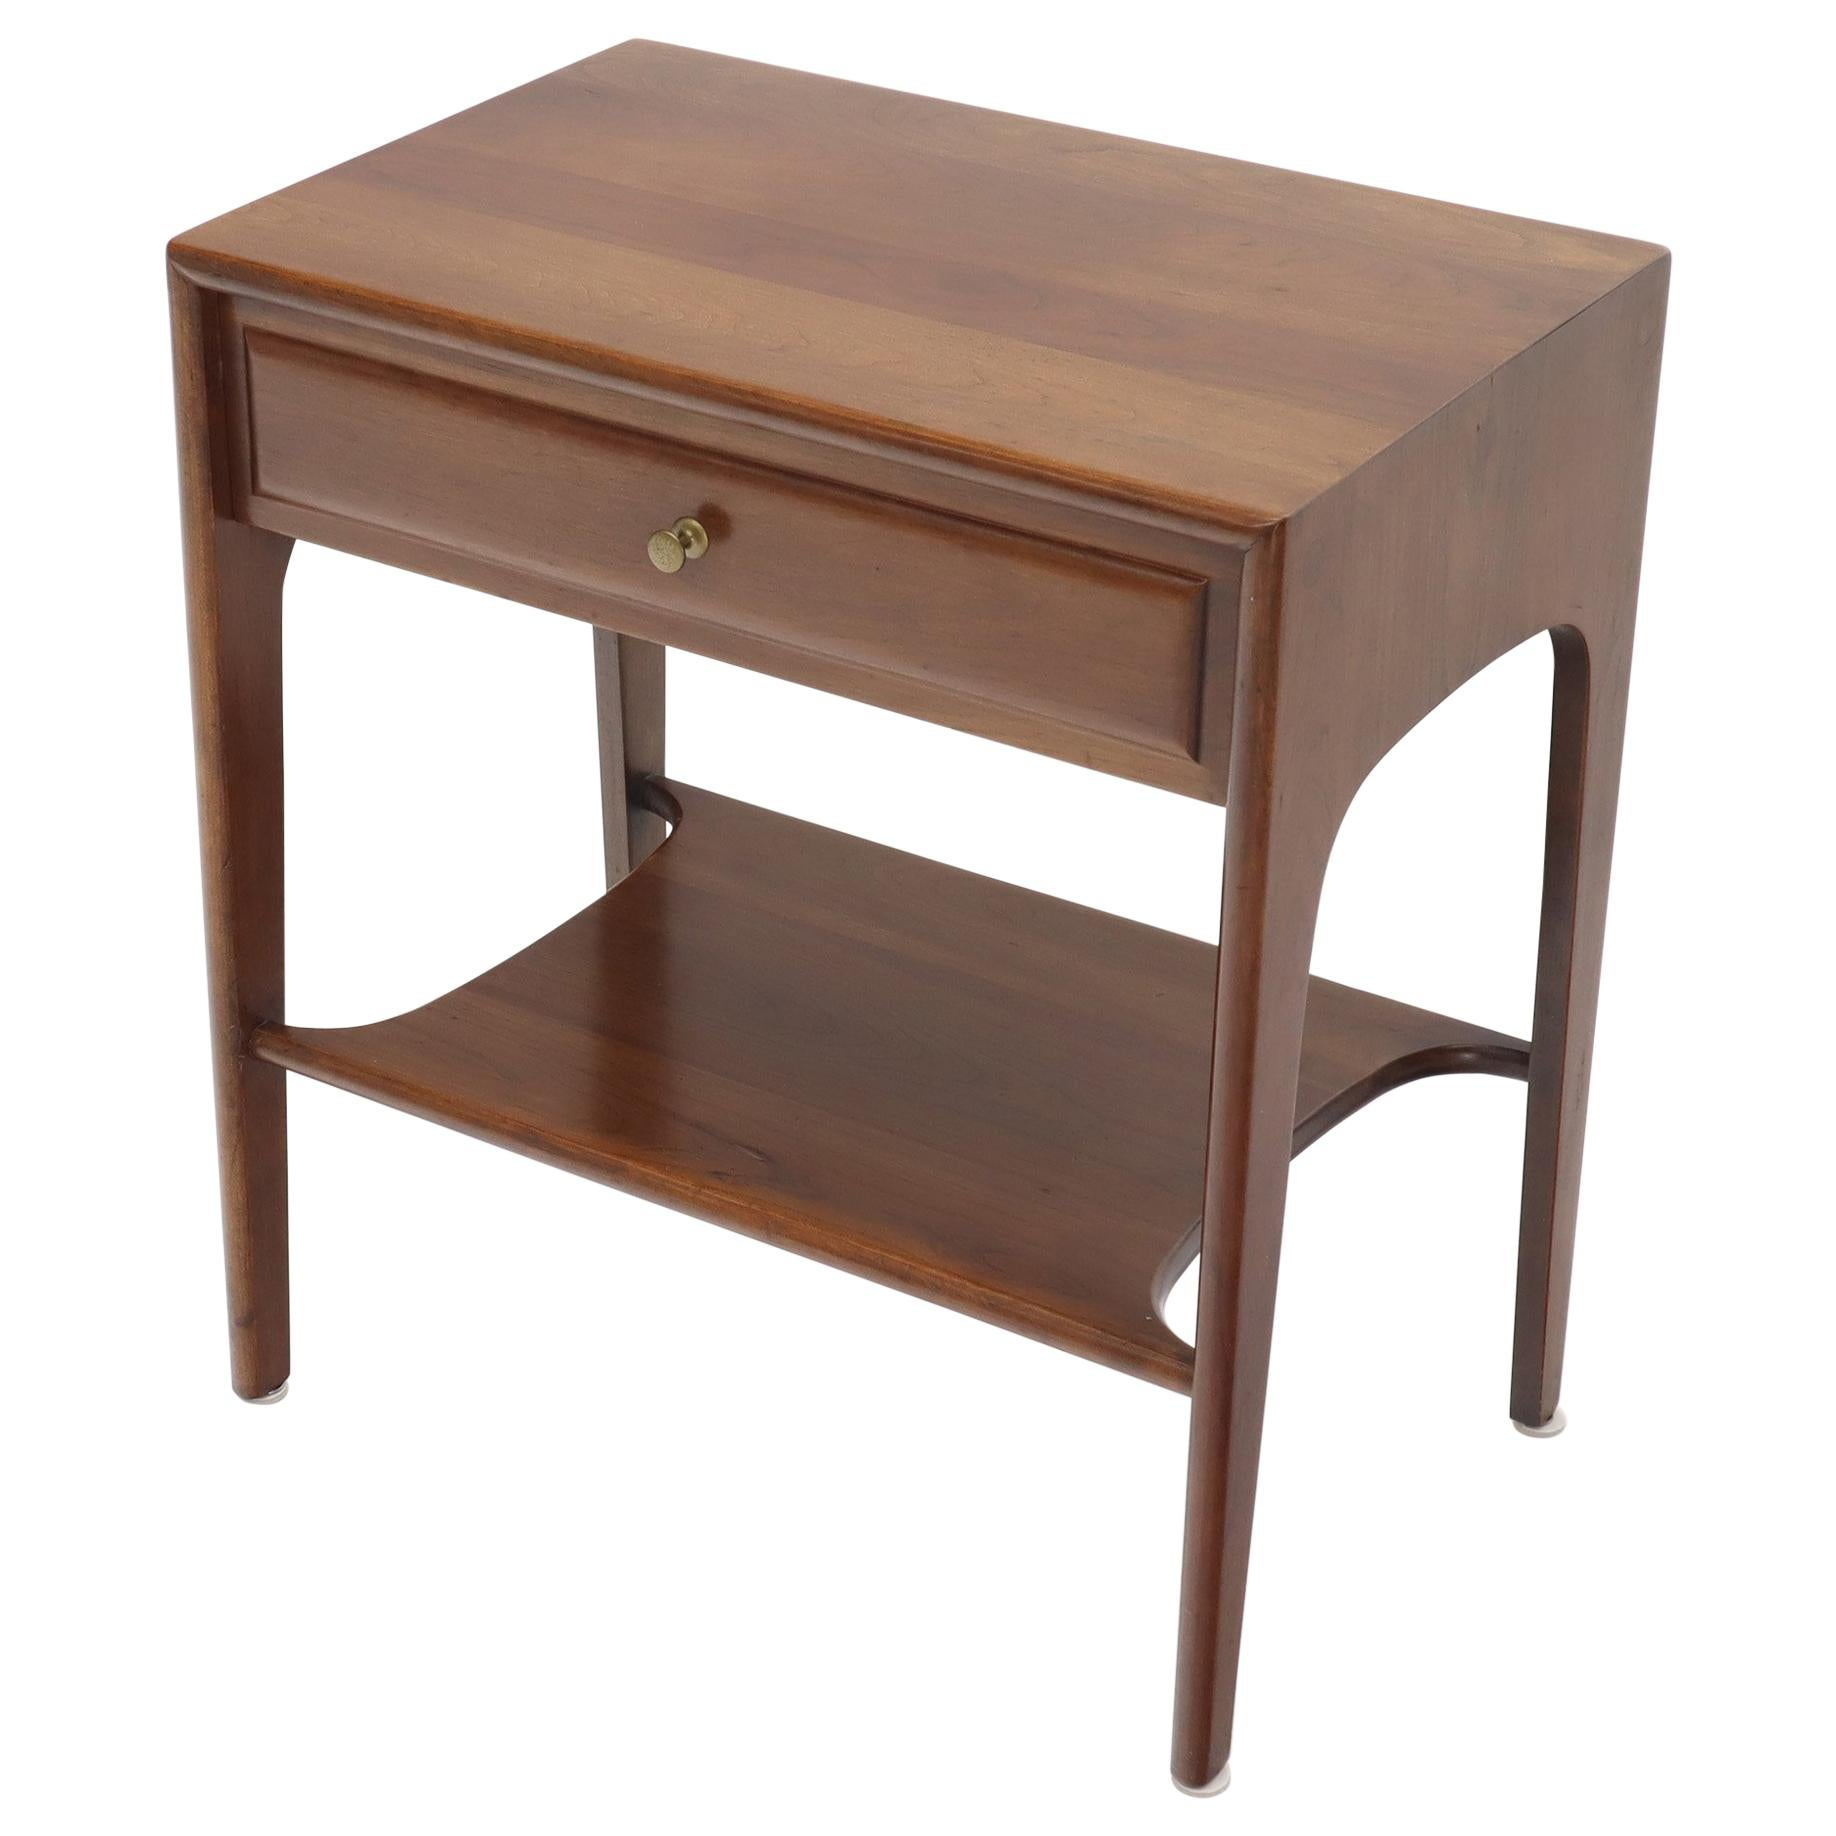 Solid Cherry One Drawer End Table Nightstand Mid Century Modern